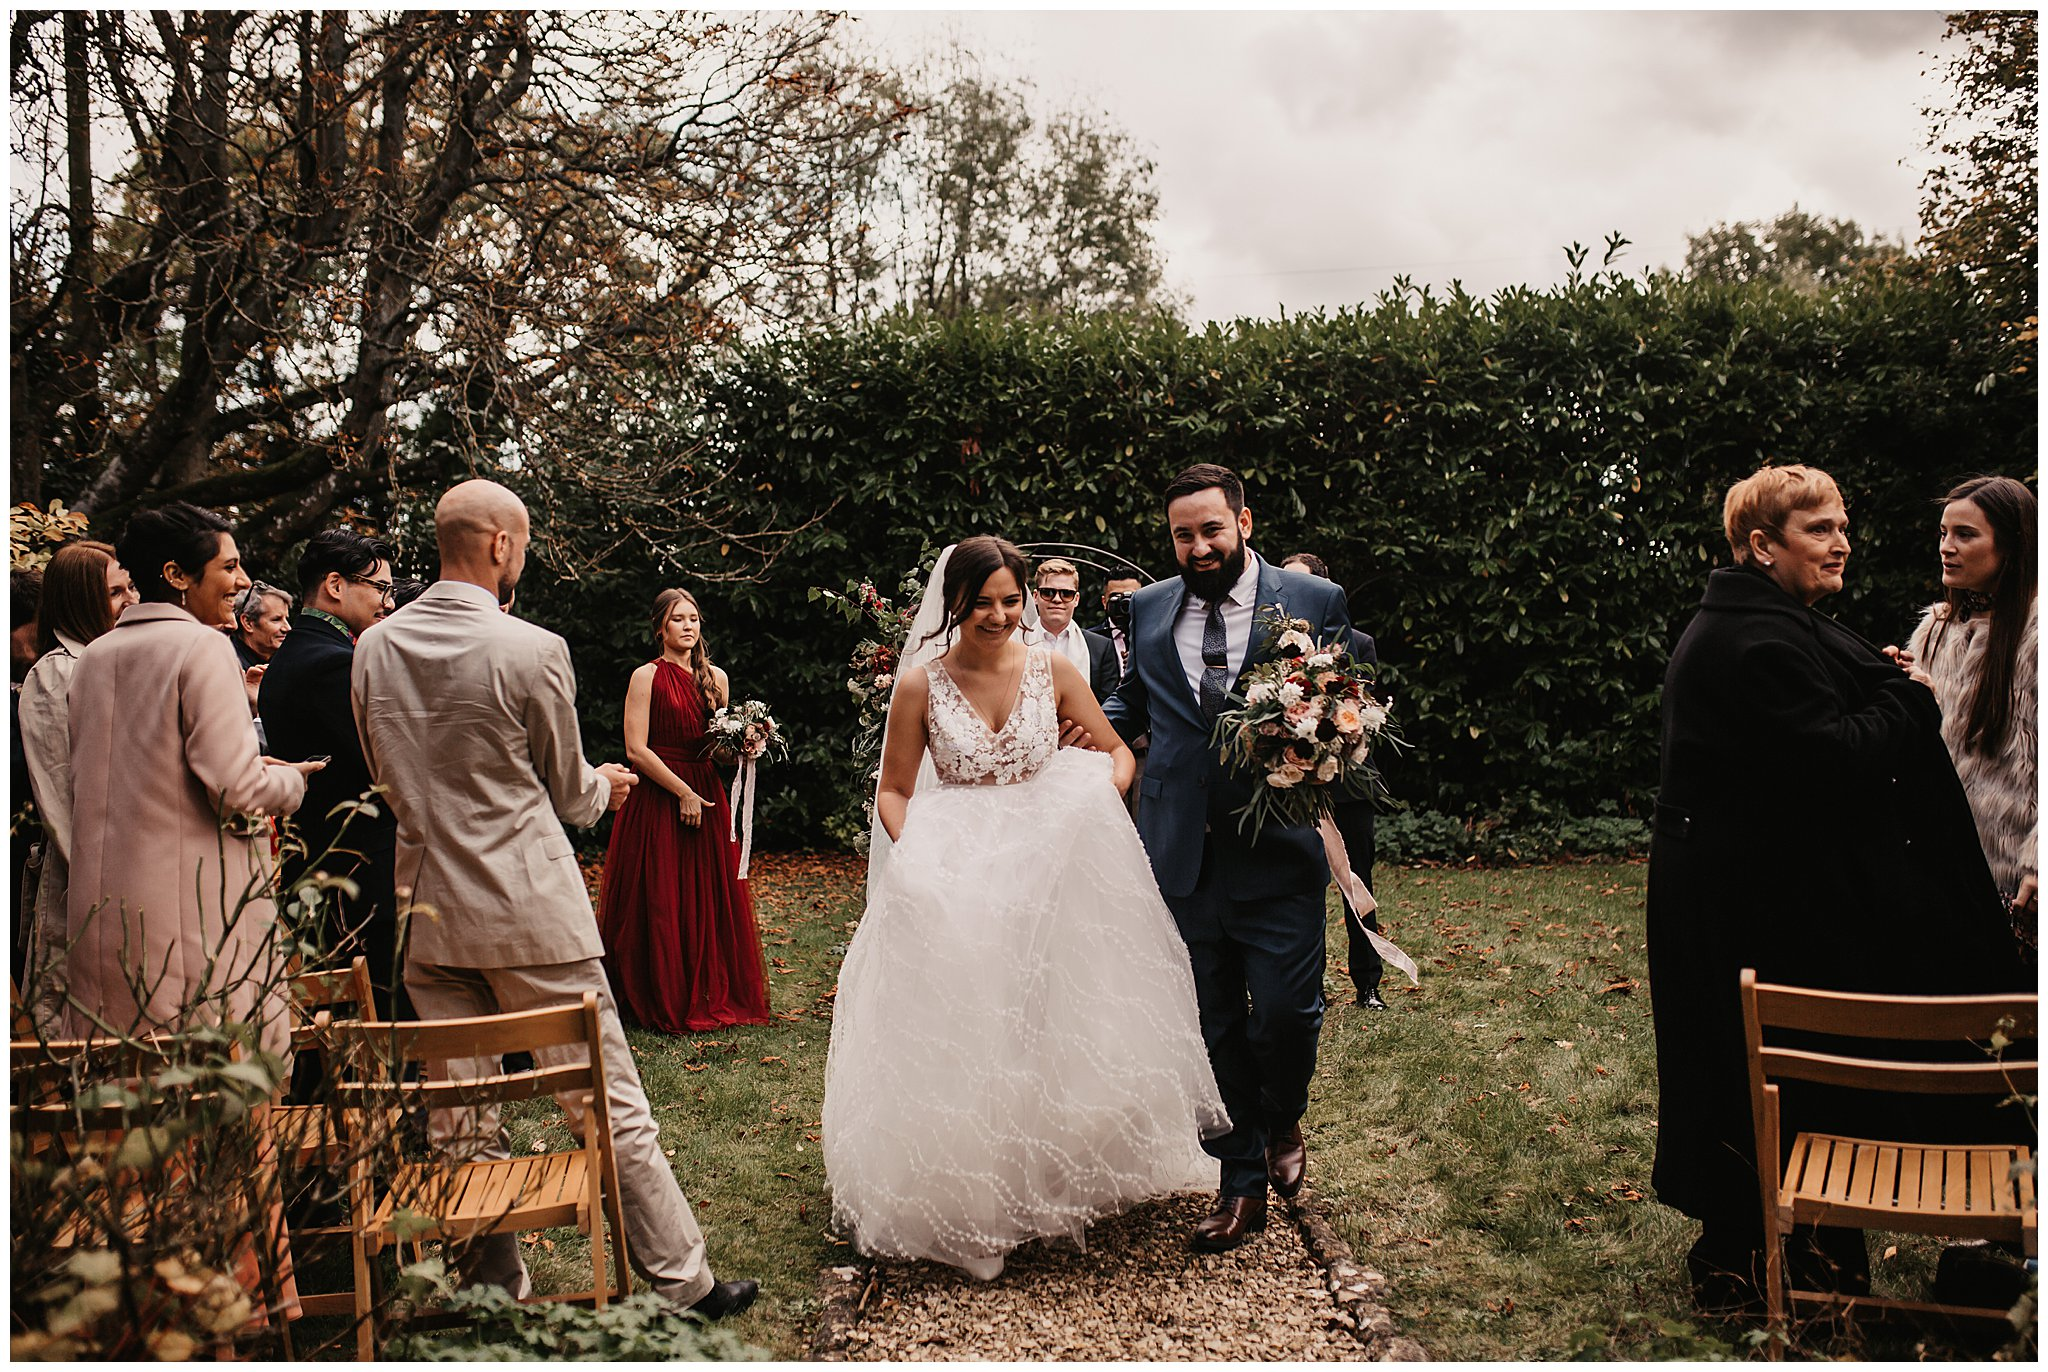 Max & Ksenia Autumnal Wiltshire Wedding-276.jpg